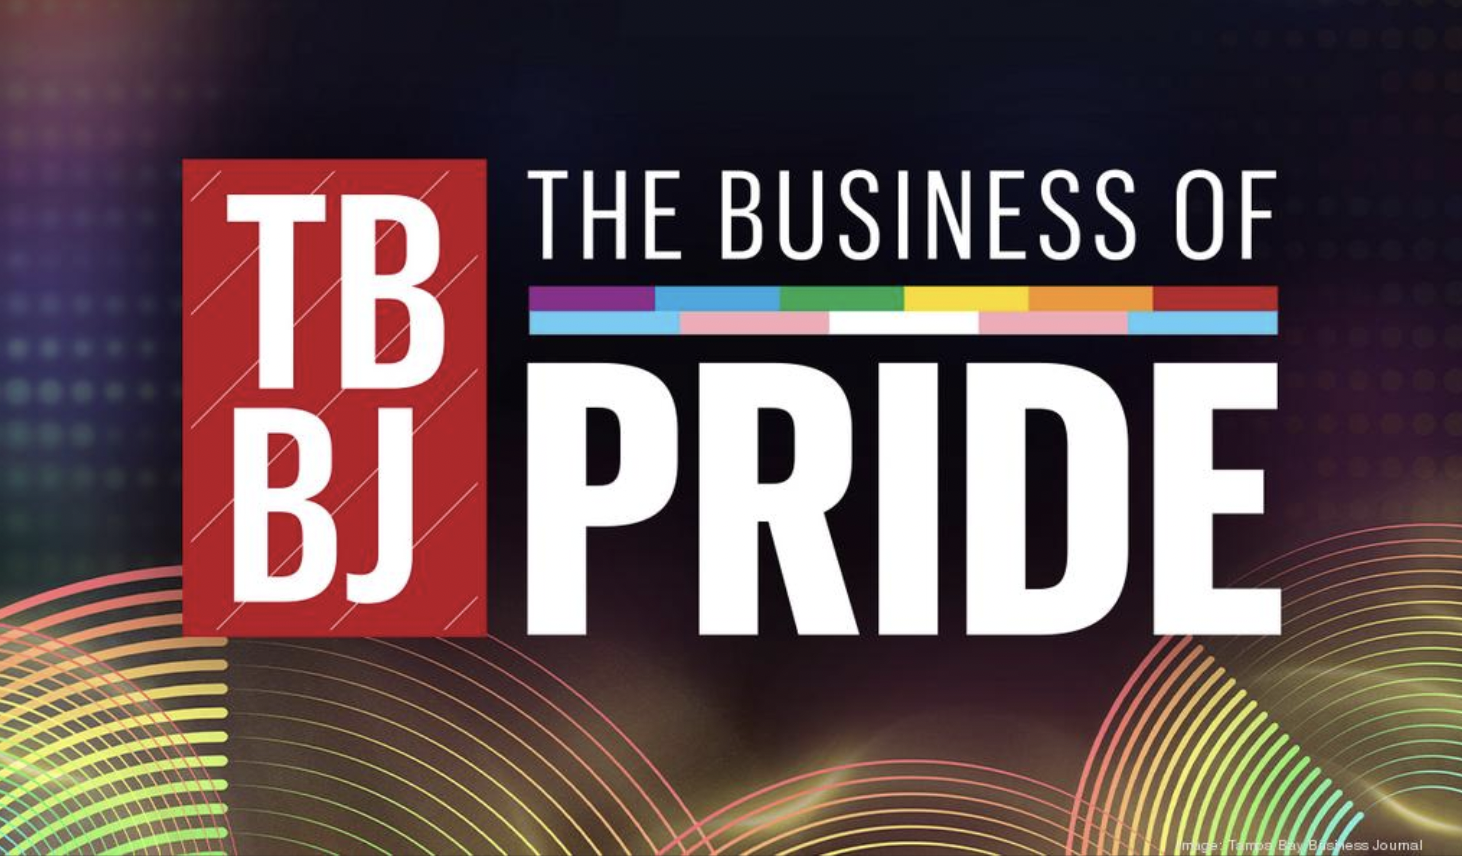 Tampa Bay Business Journal Business of Pride honoree